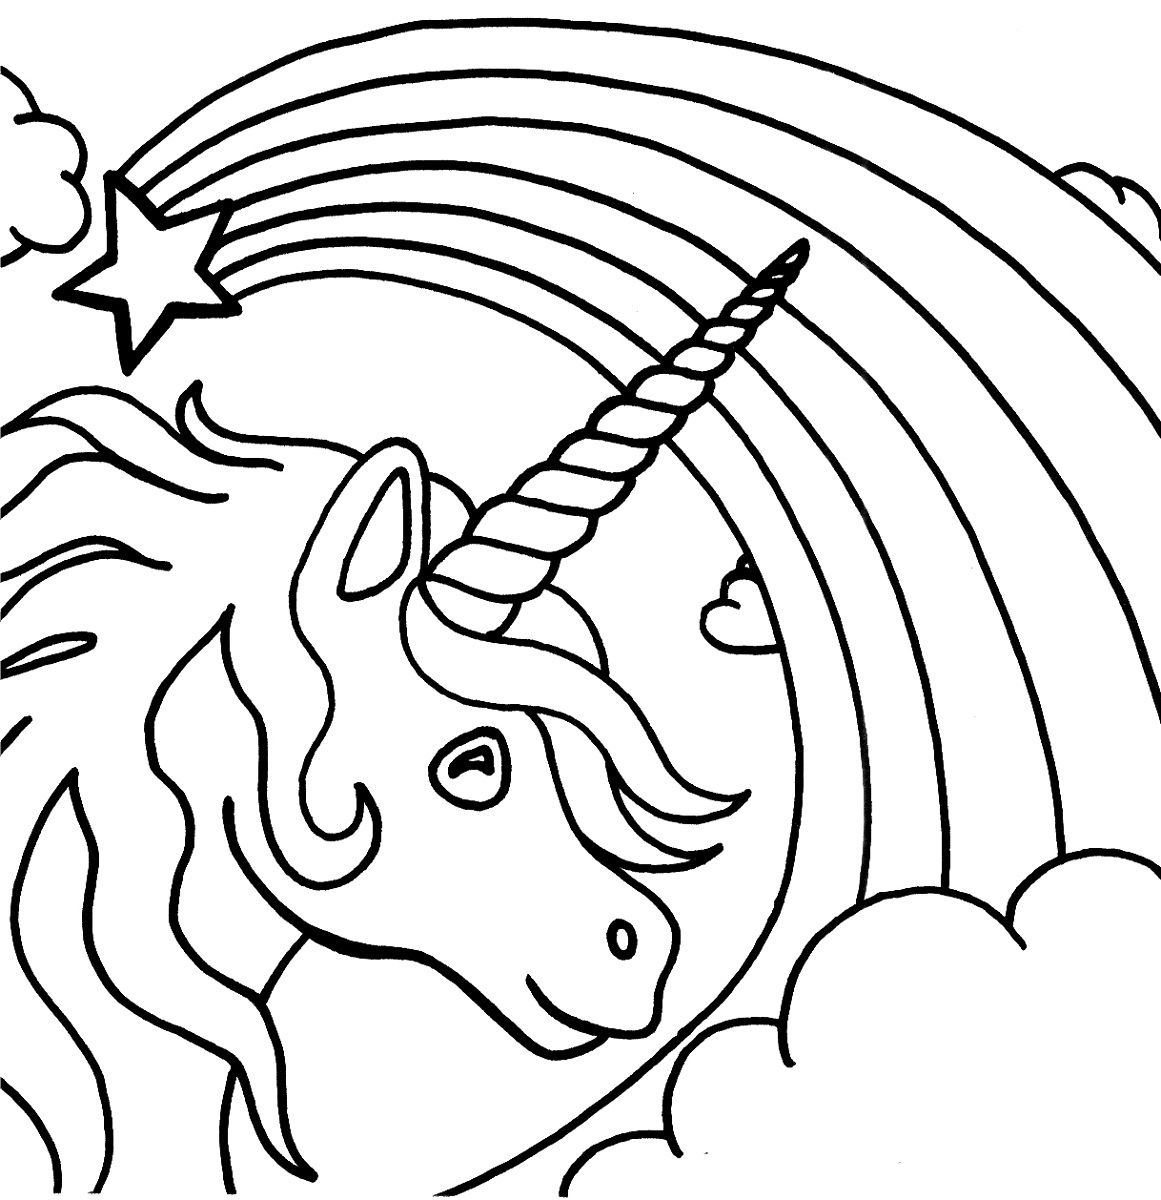 coloring pictures to color for kids cute coloring pages best coloring pages for kids kids color to pictures coloring for